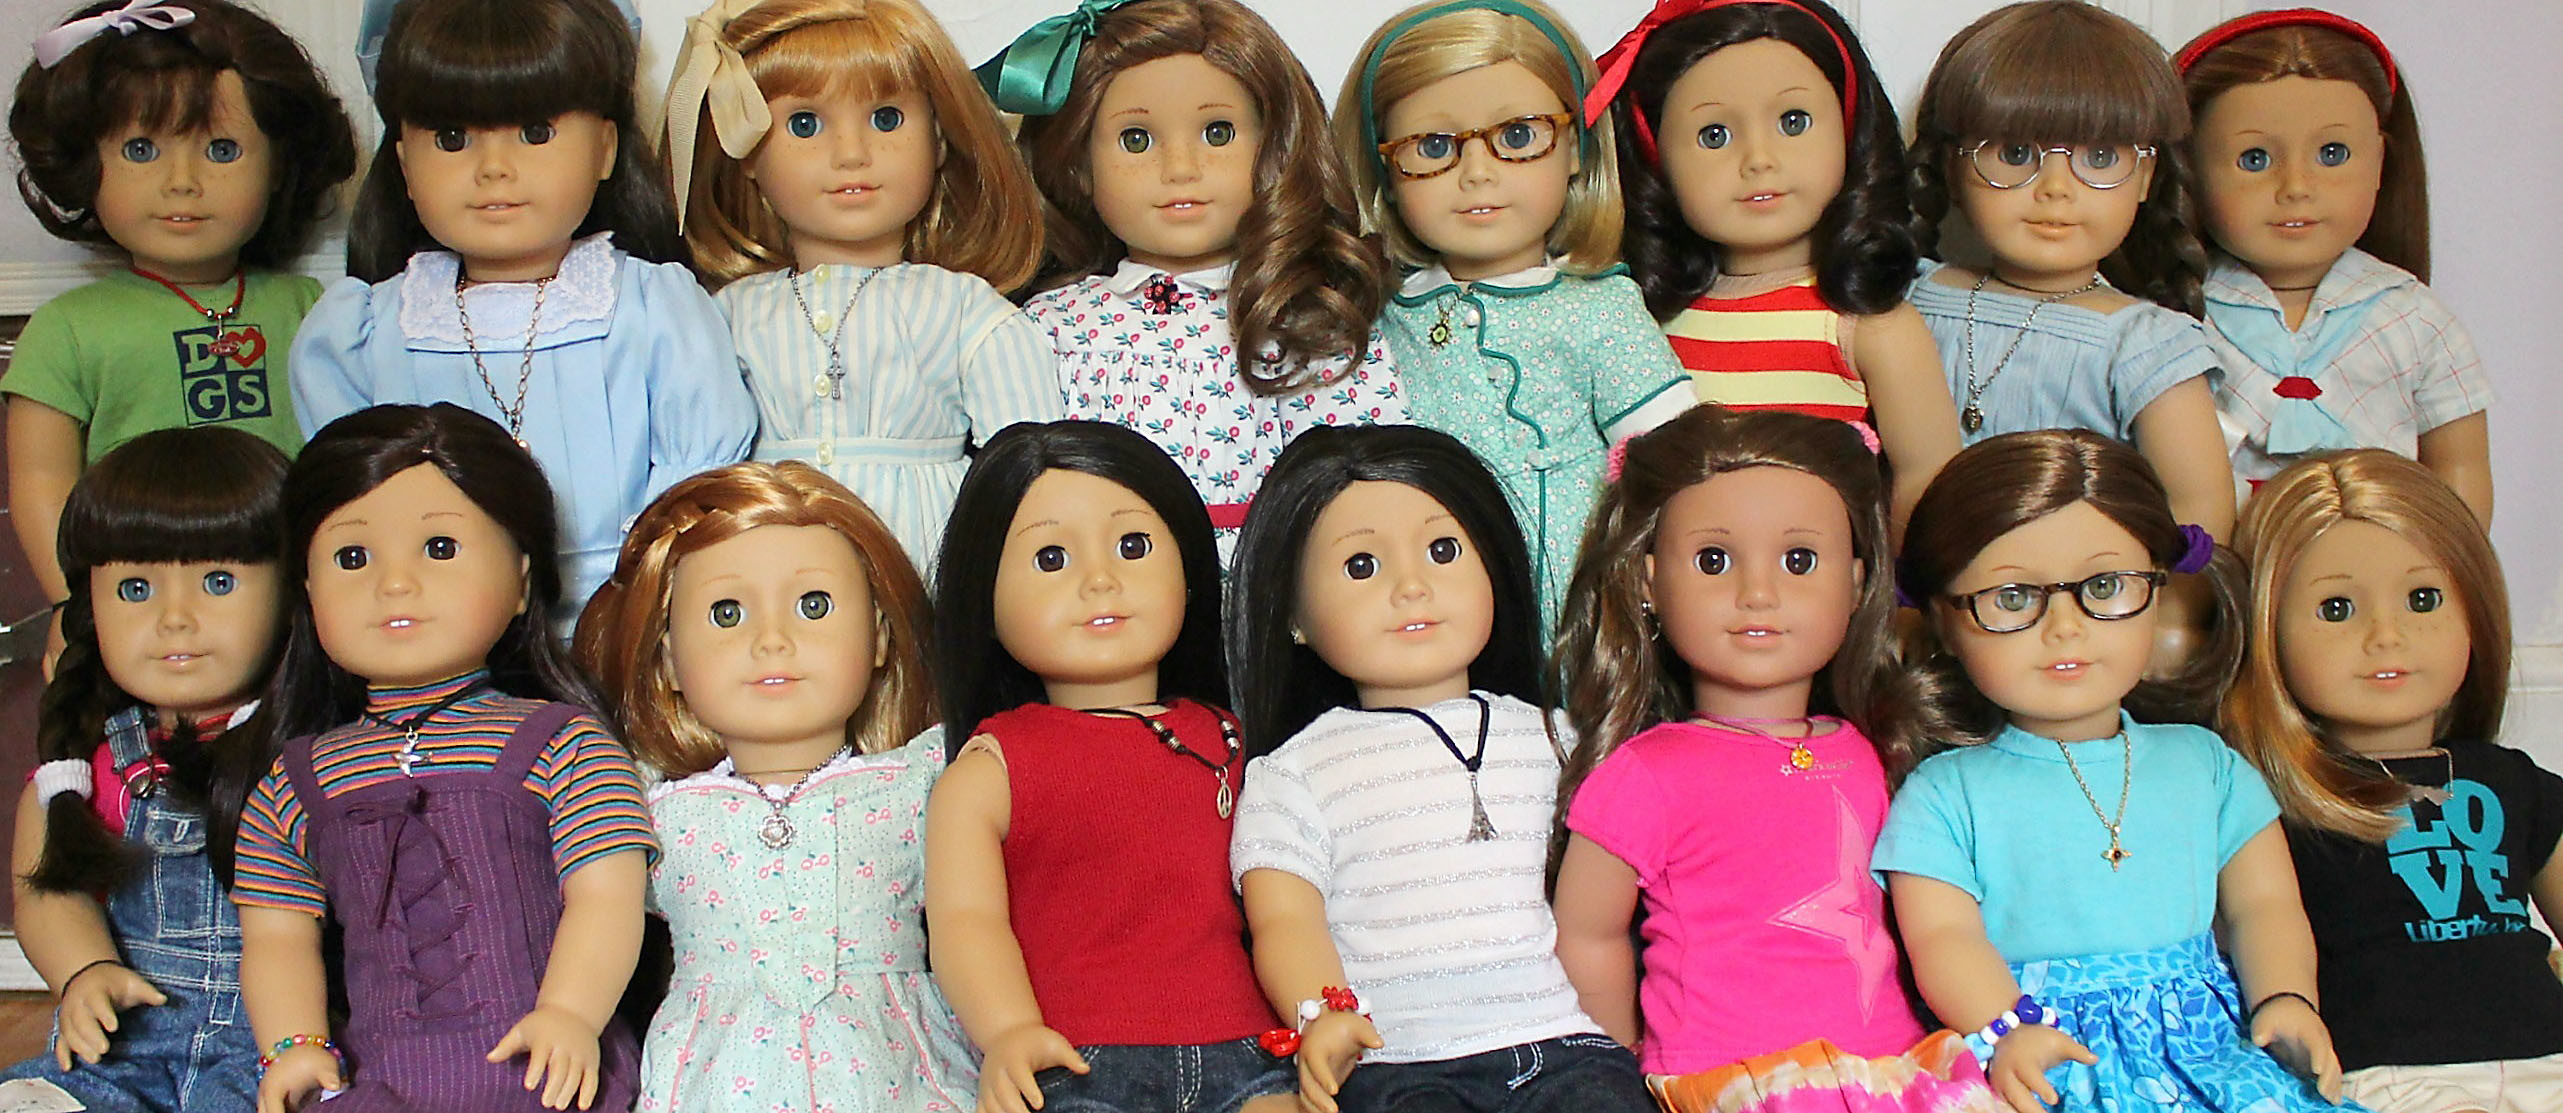 american girl doll wallpaper 62 images